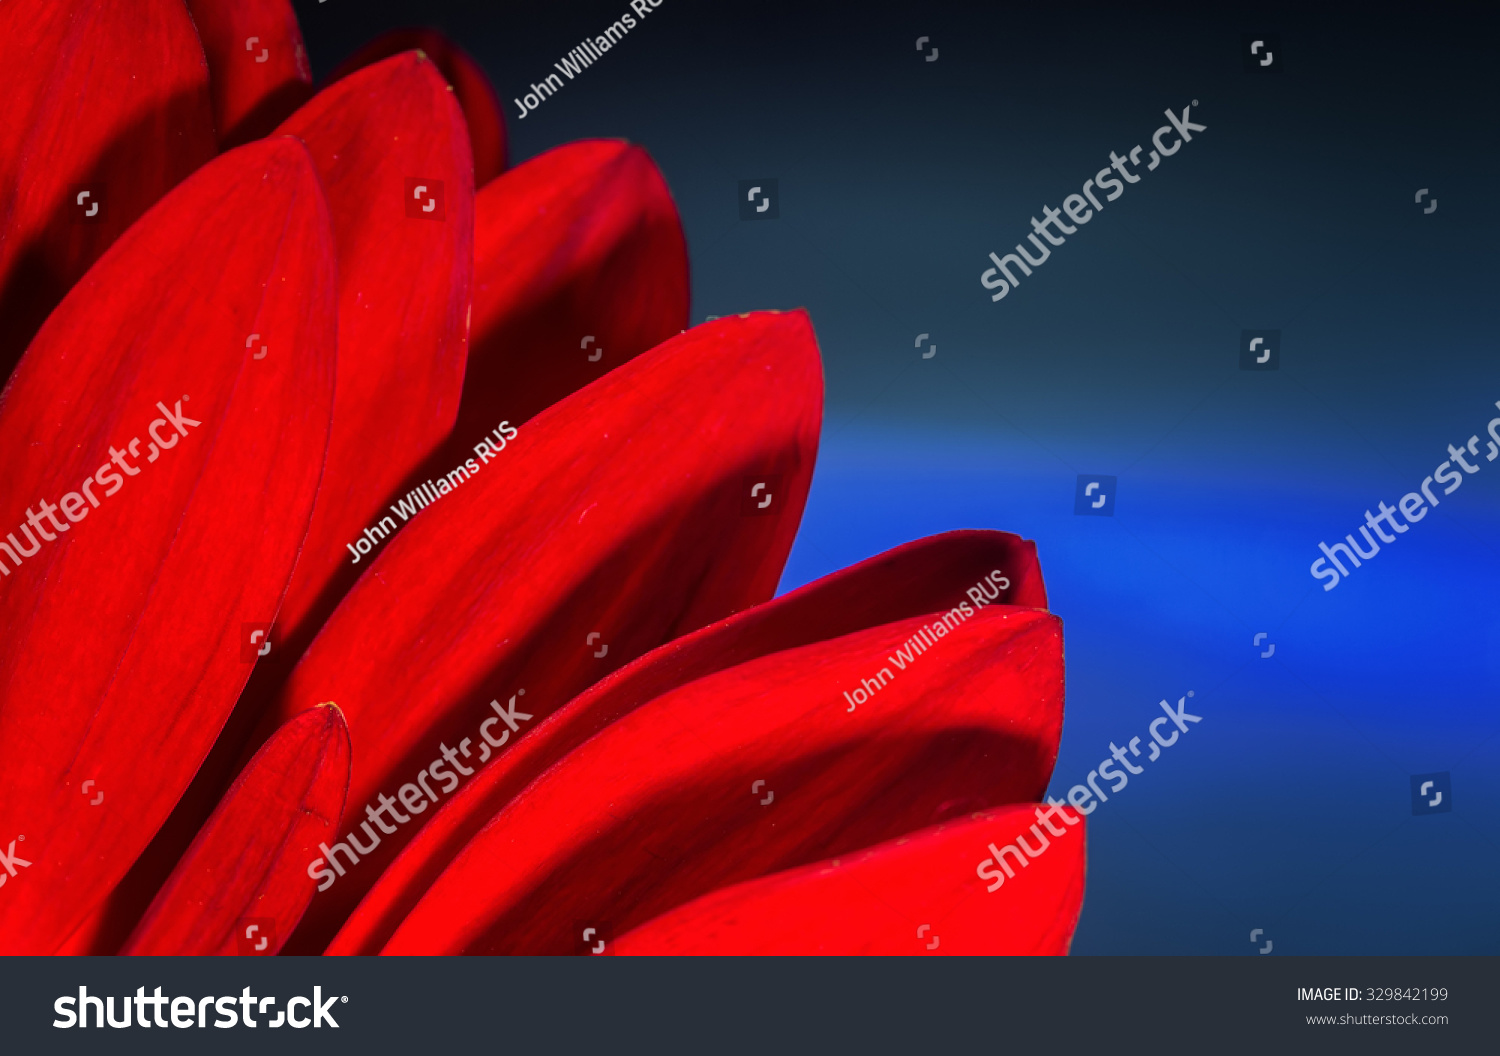 Bright Red Petals Hidden Red Chrysanthemum Stock Photo 329842199 Shutterstock